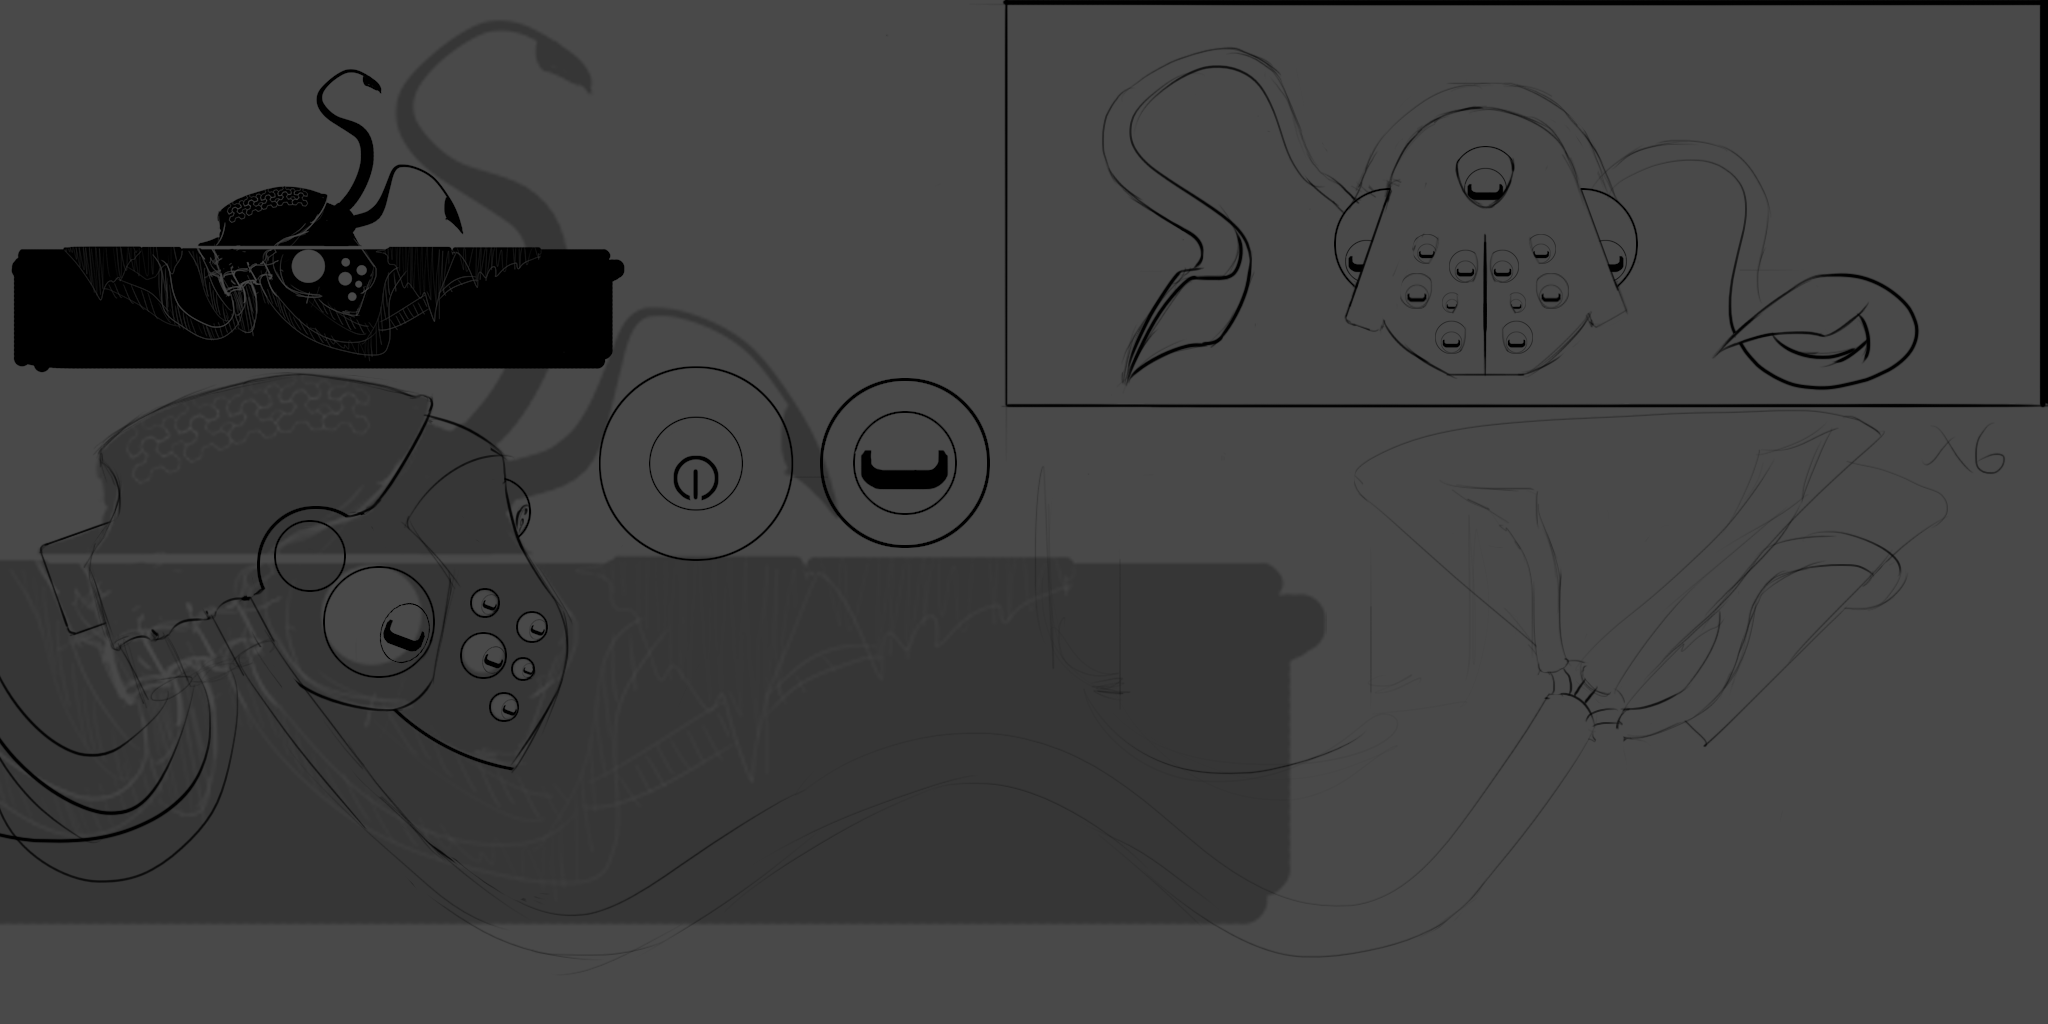 This image just shows some further design iteration once the idea was finalized. As you can see I really liked the idea of the eyes mirroring the real world influence of the design, so I created a mechanical version of a cuttlefish type eye.